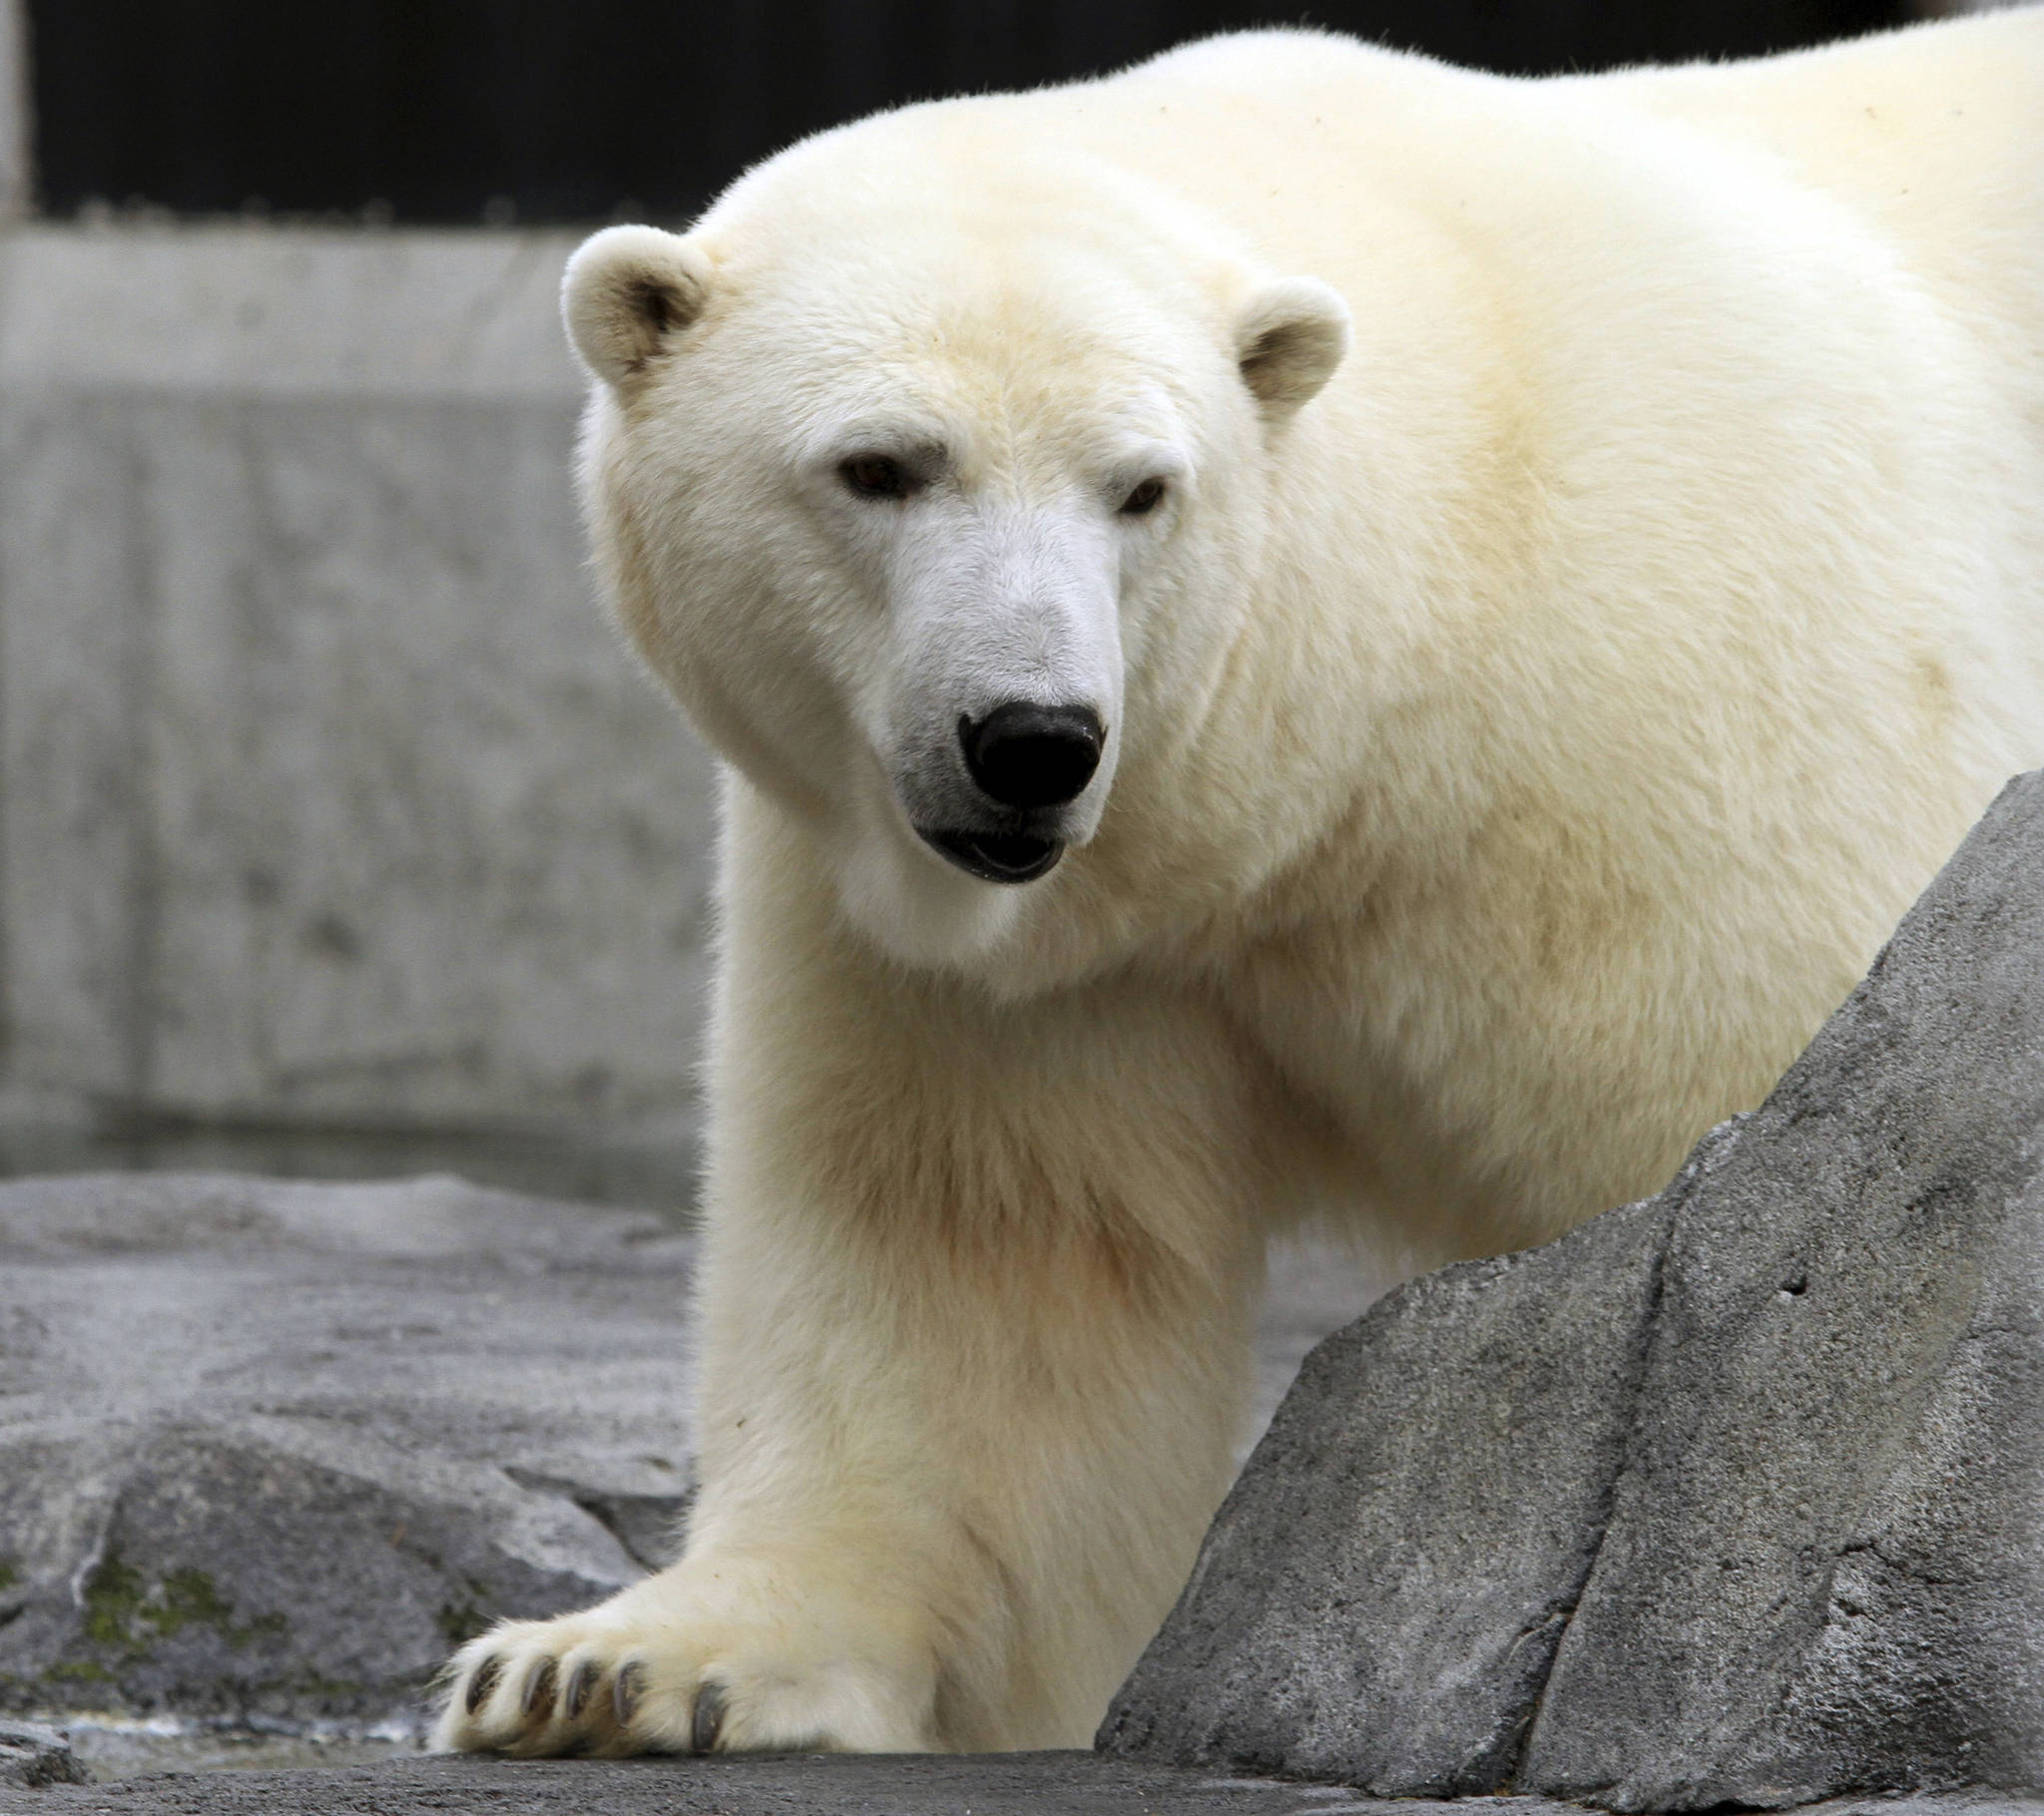 In this Sept. 5, 2012, file photo, Ahpun, a female polar bear, strolls around her cage at the Alaska Zoo in Anchorage, Alaska. The popular polar bear died unexpectedly on New Year's Eve the zoo said Tuesday. (AP Photo/Dan Joling, File)